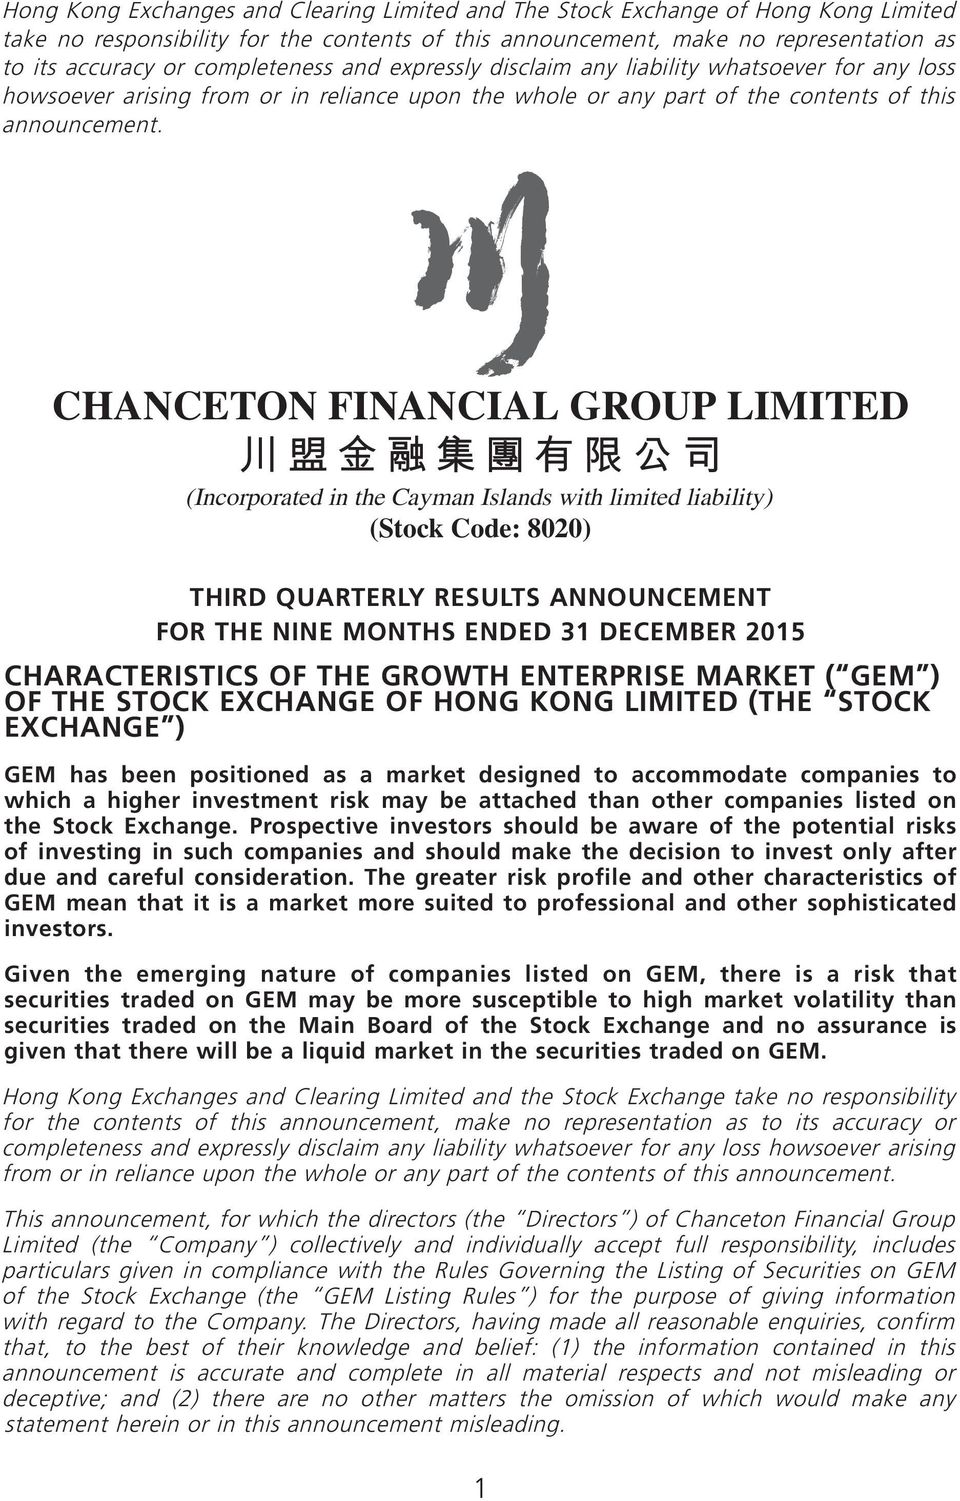 CHANCETON FINANCIAL GROUP LIMITED (Incorporated in the Cayman Islands with limited liability) (Stock Code: 8020) THIRD QUARTERLY RESULTS ANNOUNCEMENT FOR THE NINE MONTHS ENDED 31 DECEMBER 2015